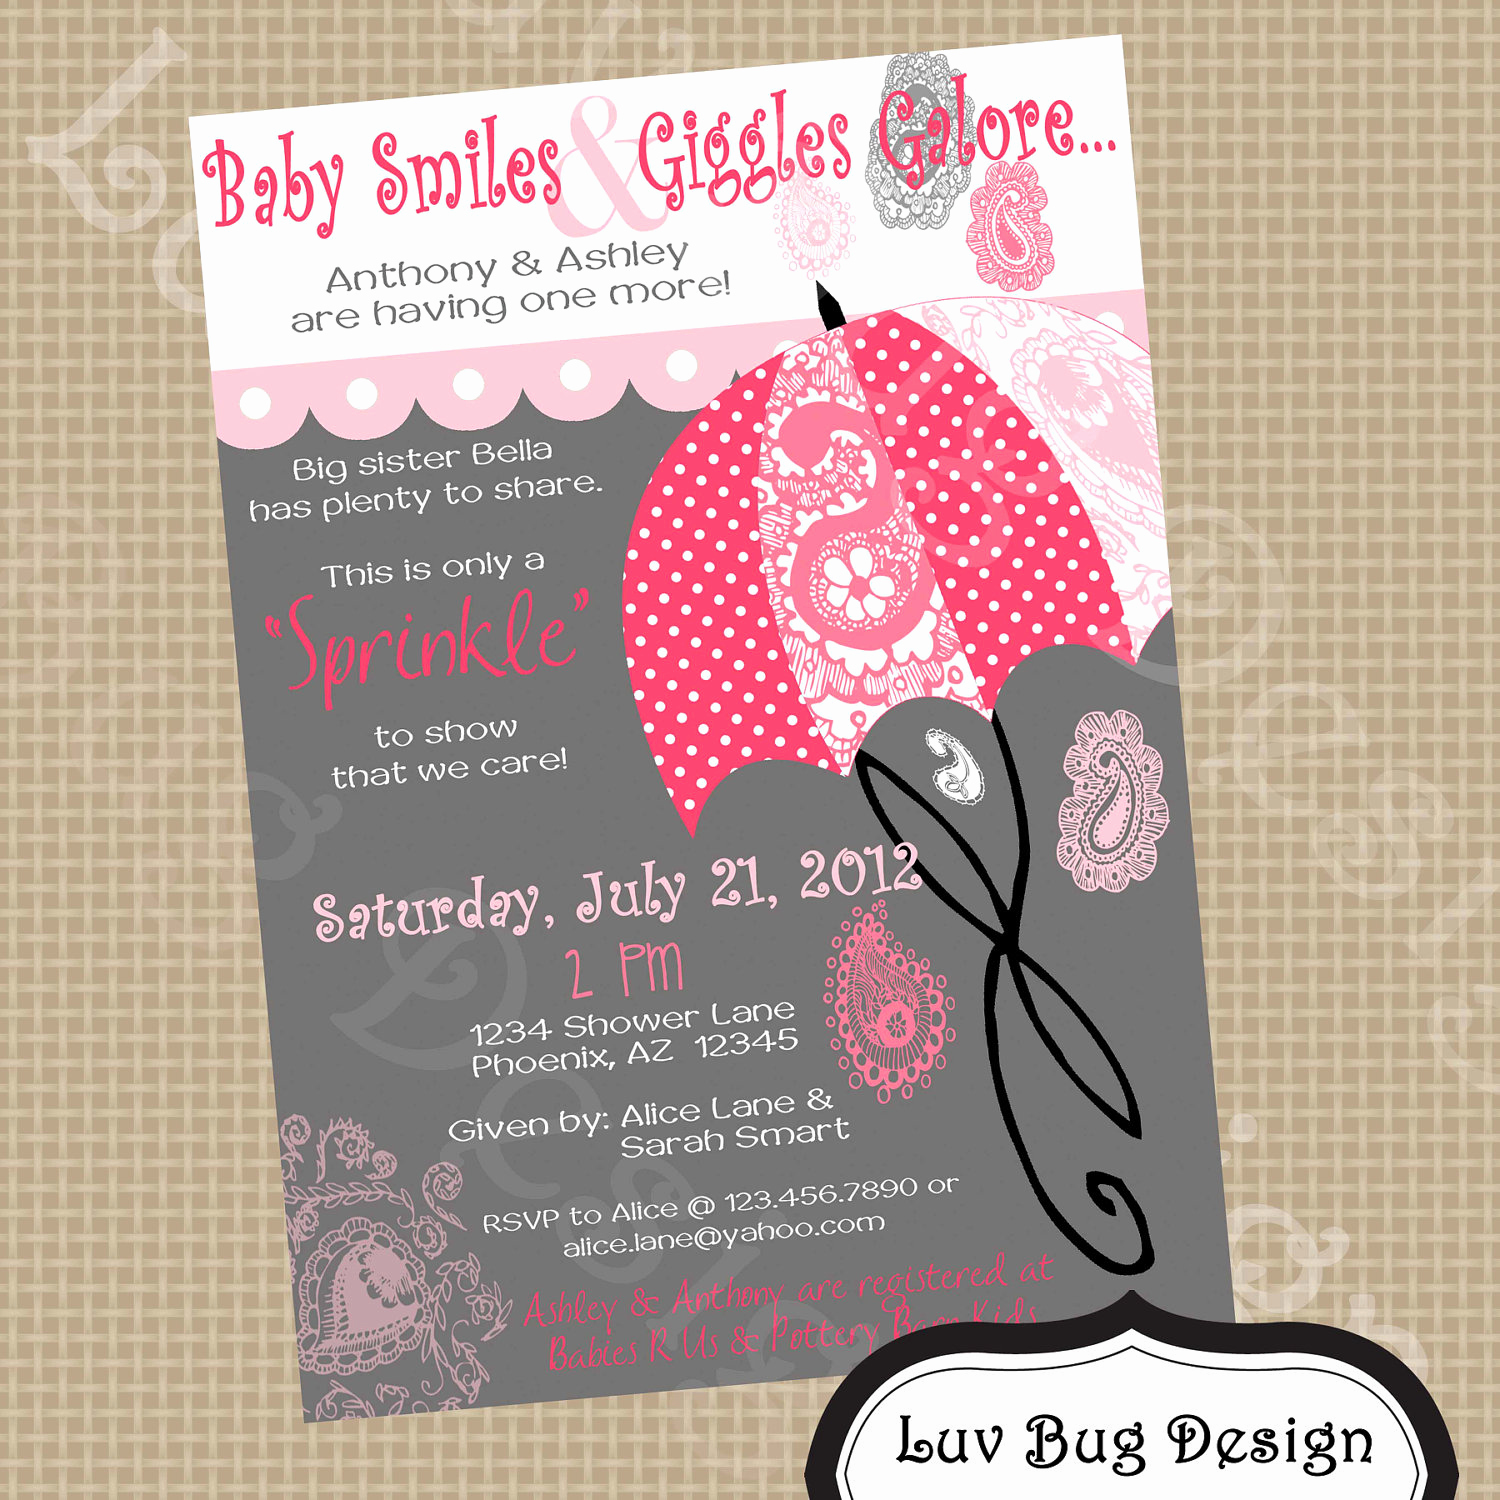 Sprinkle Baby Shower Invitation Wording Best Of Request A Custom order and Have something Made Just for You